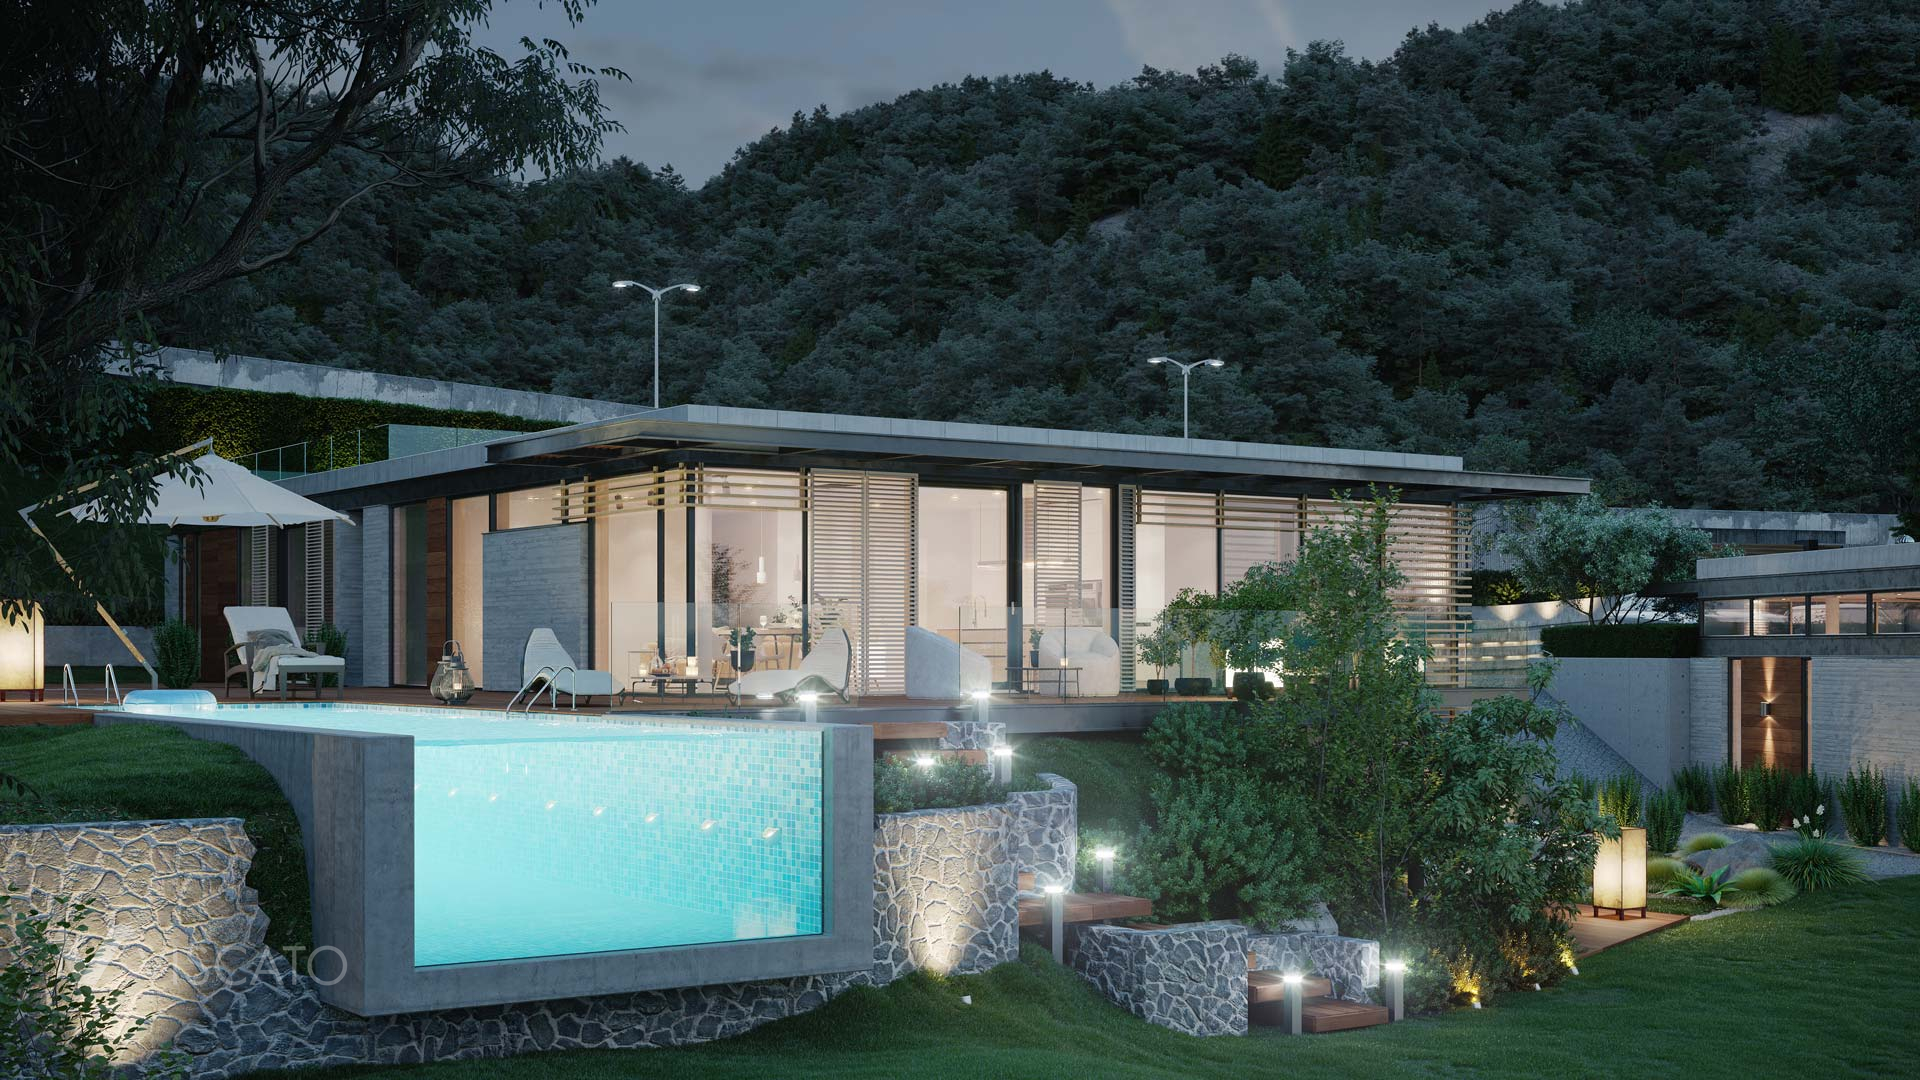 house with a swimming pool at night, 3D visualization